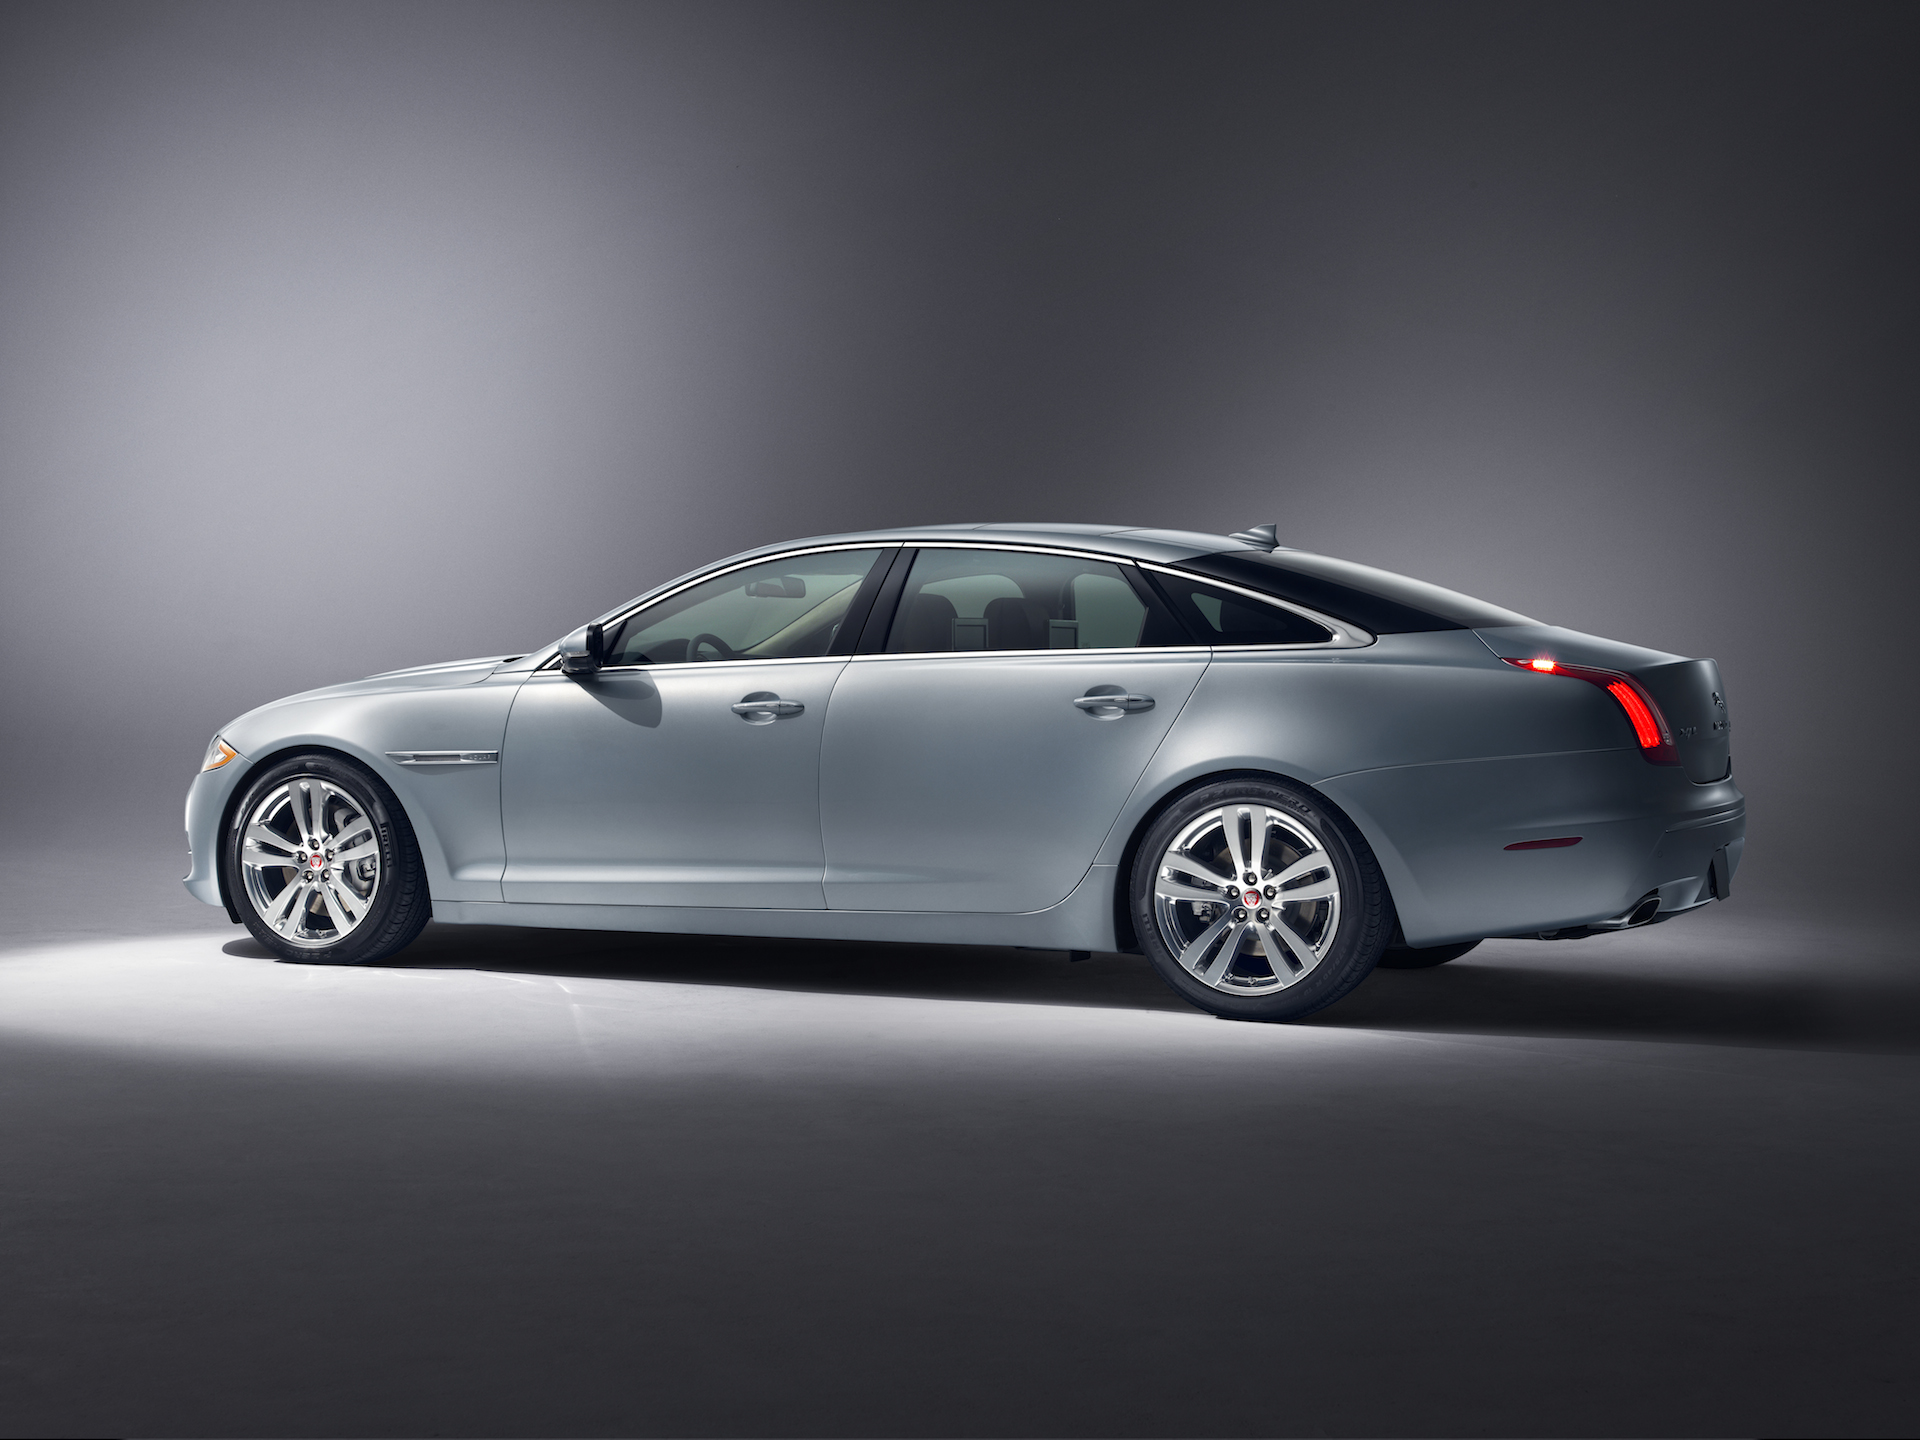 2015 Jaguar XJ Review, Ratings, Specs, Prices, and Photos ...